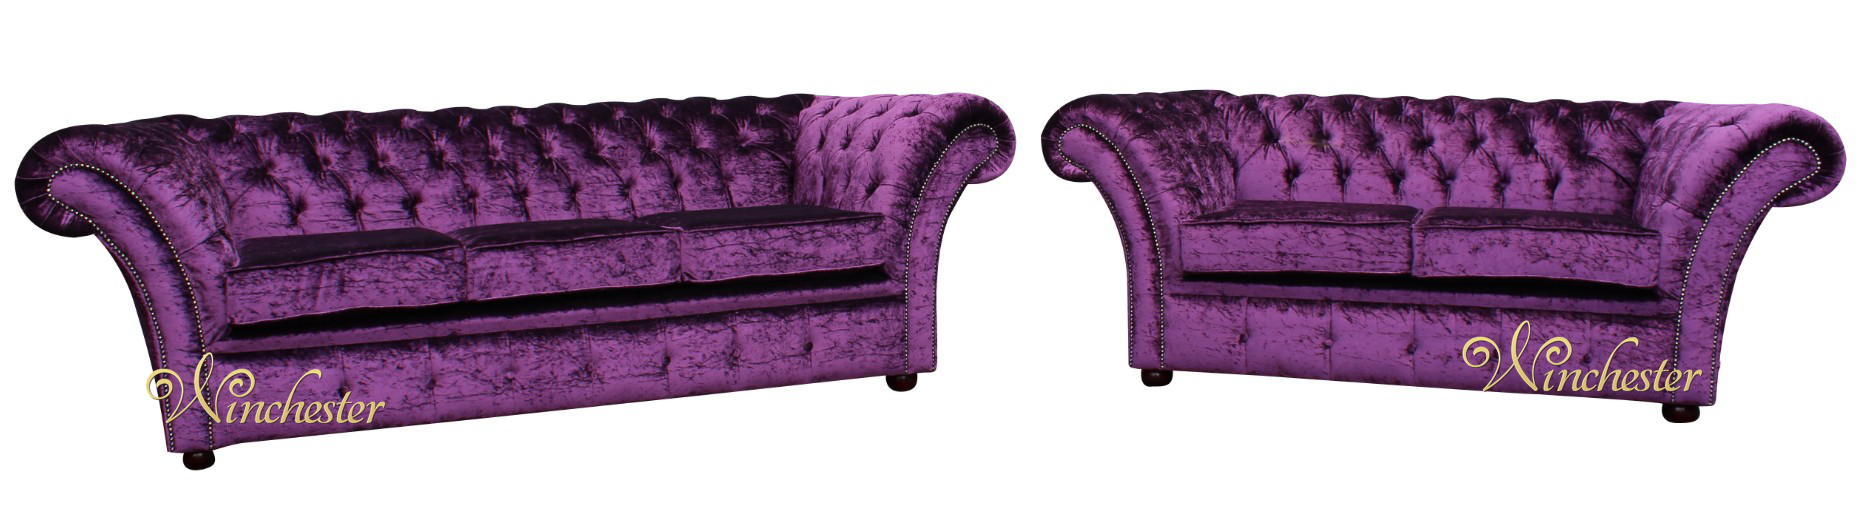 Chesterfield Balmoral 3 Seater 2 Seater Boutique Purple